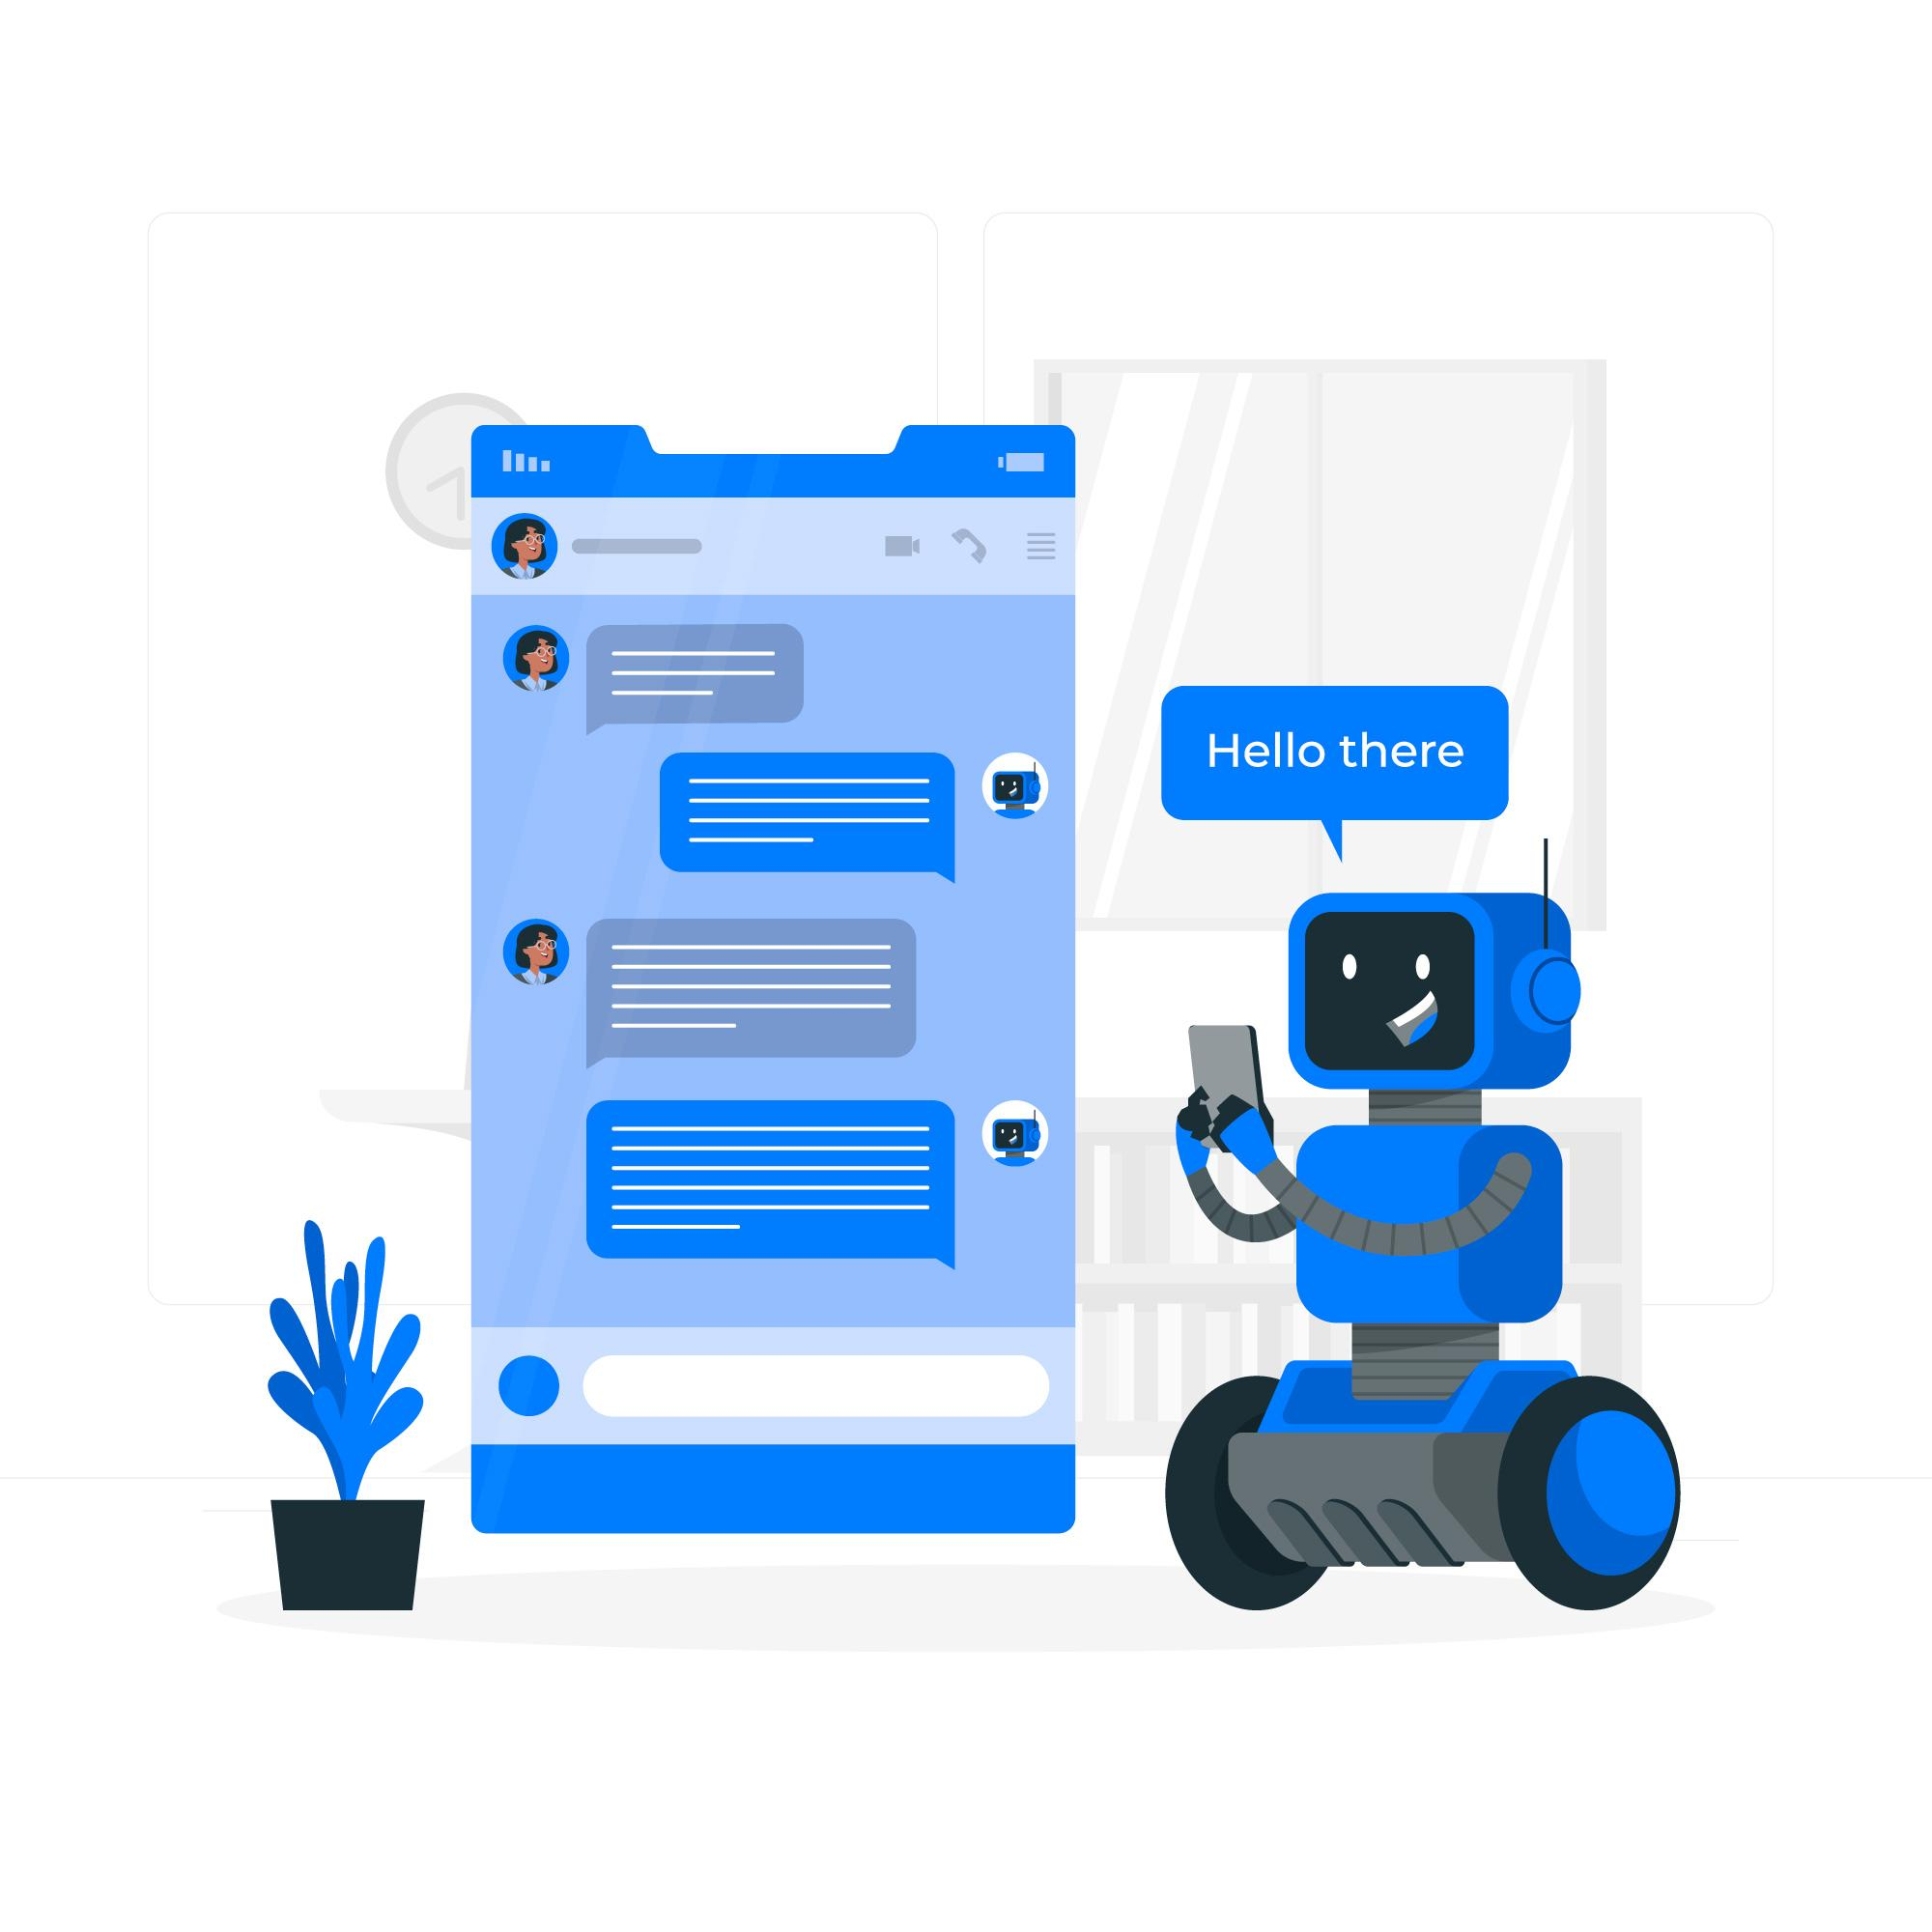 Why should you use a chatbot in your mobile marketing strategy?